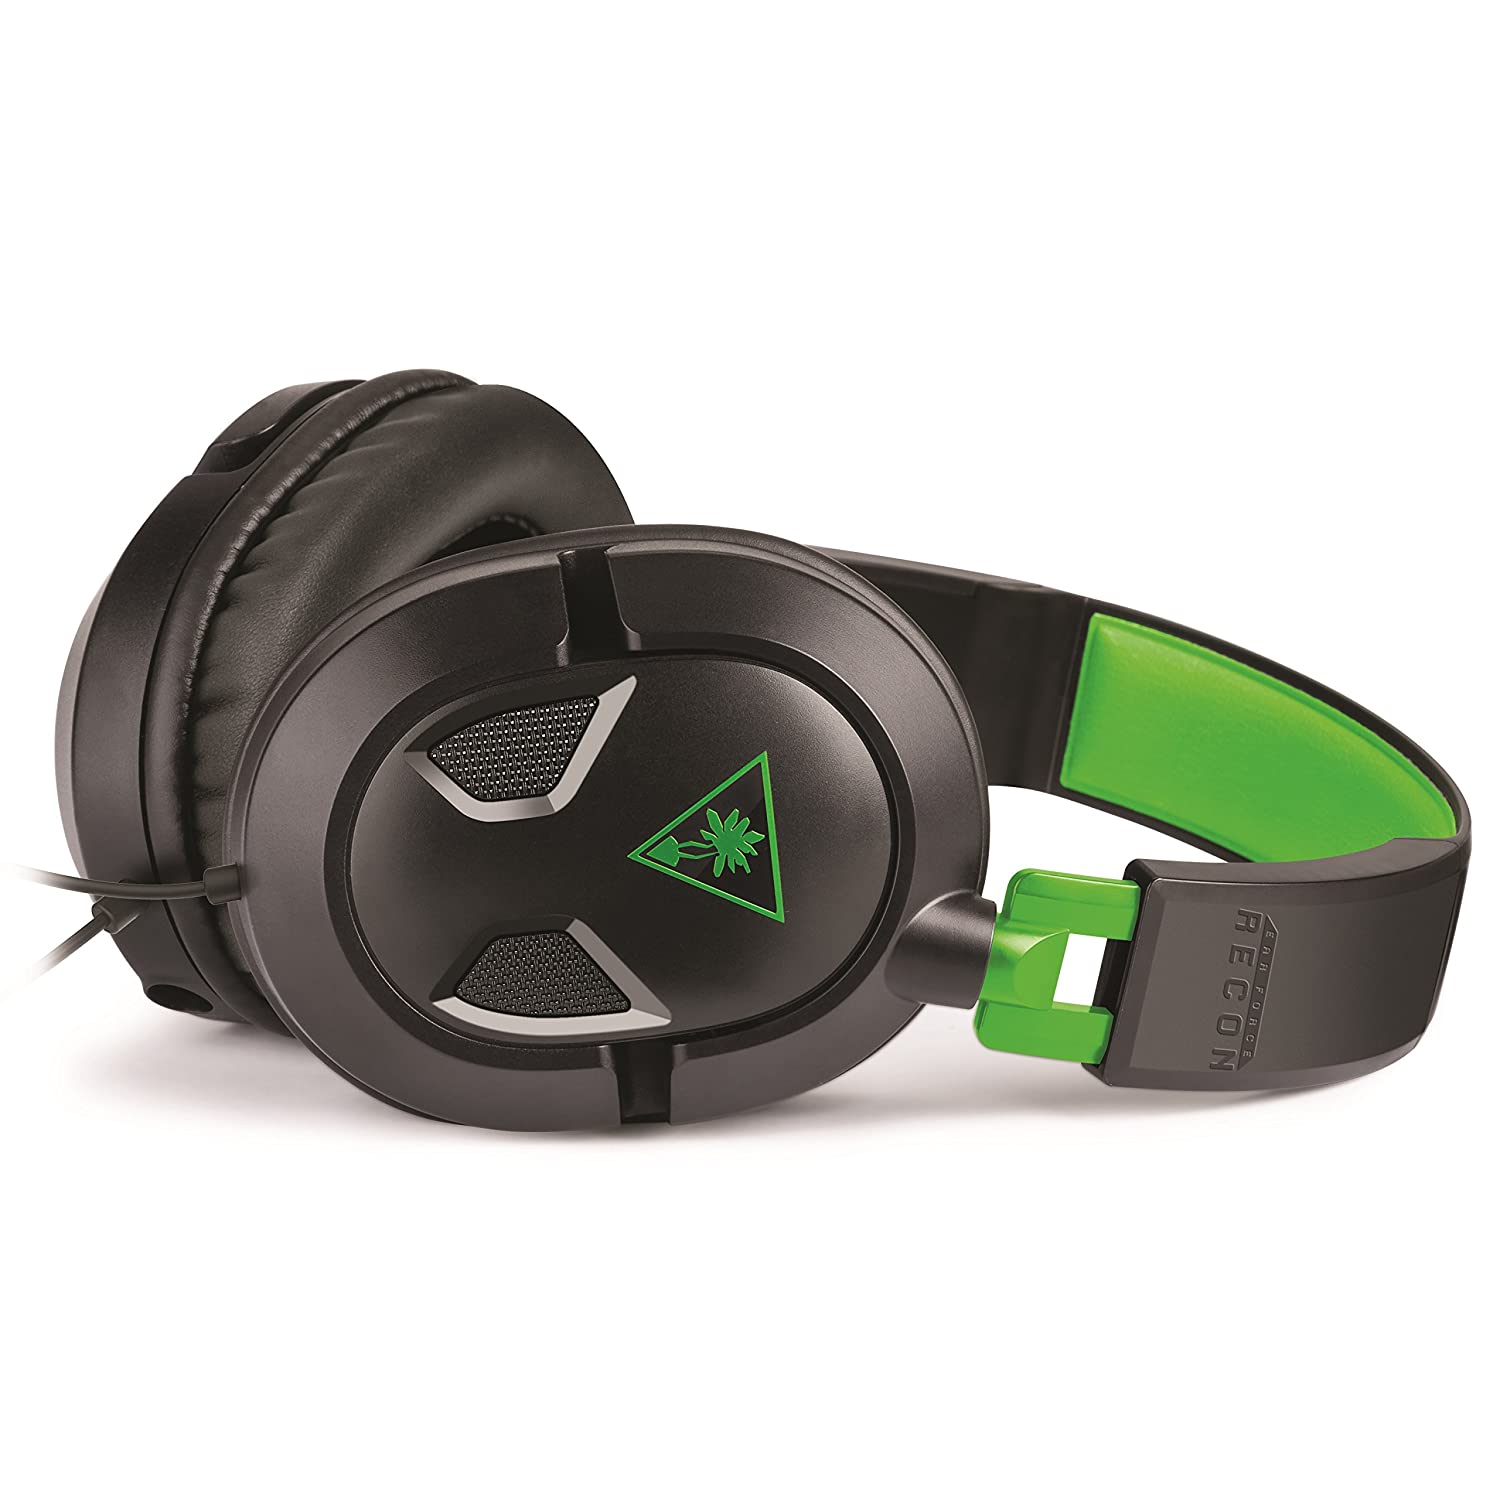 81sGppUd29L._SL1500_ turtle beach recon 50x stereo gaming headset xbox one, xbox one s